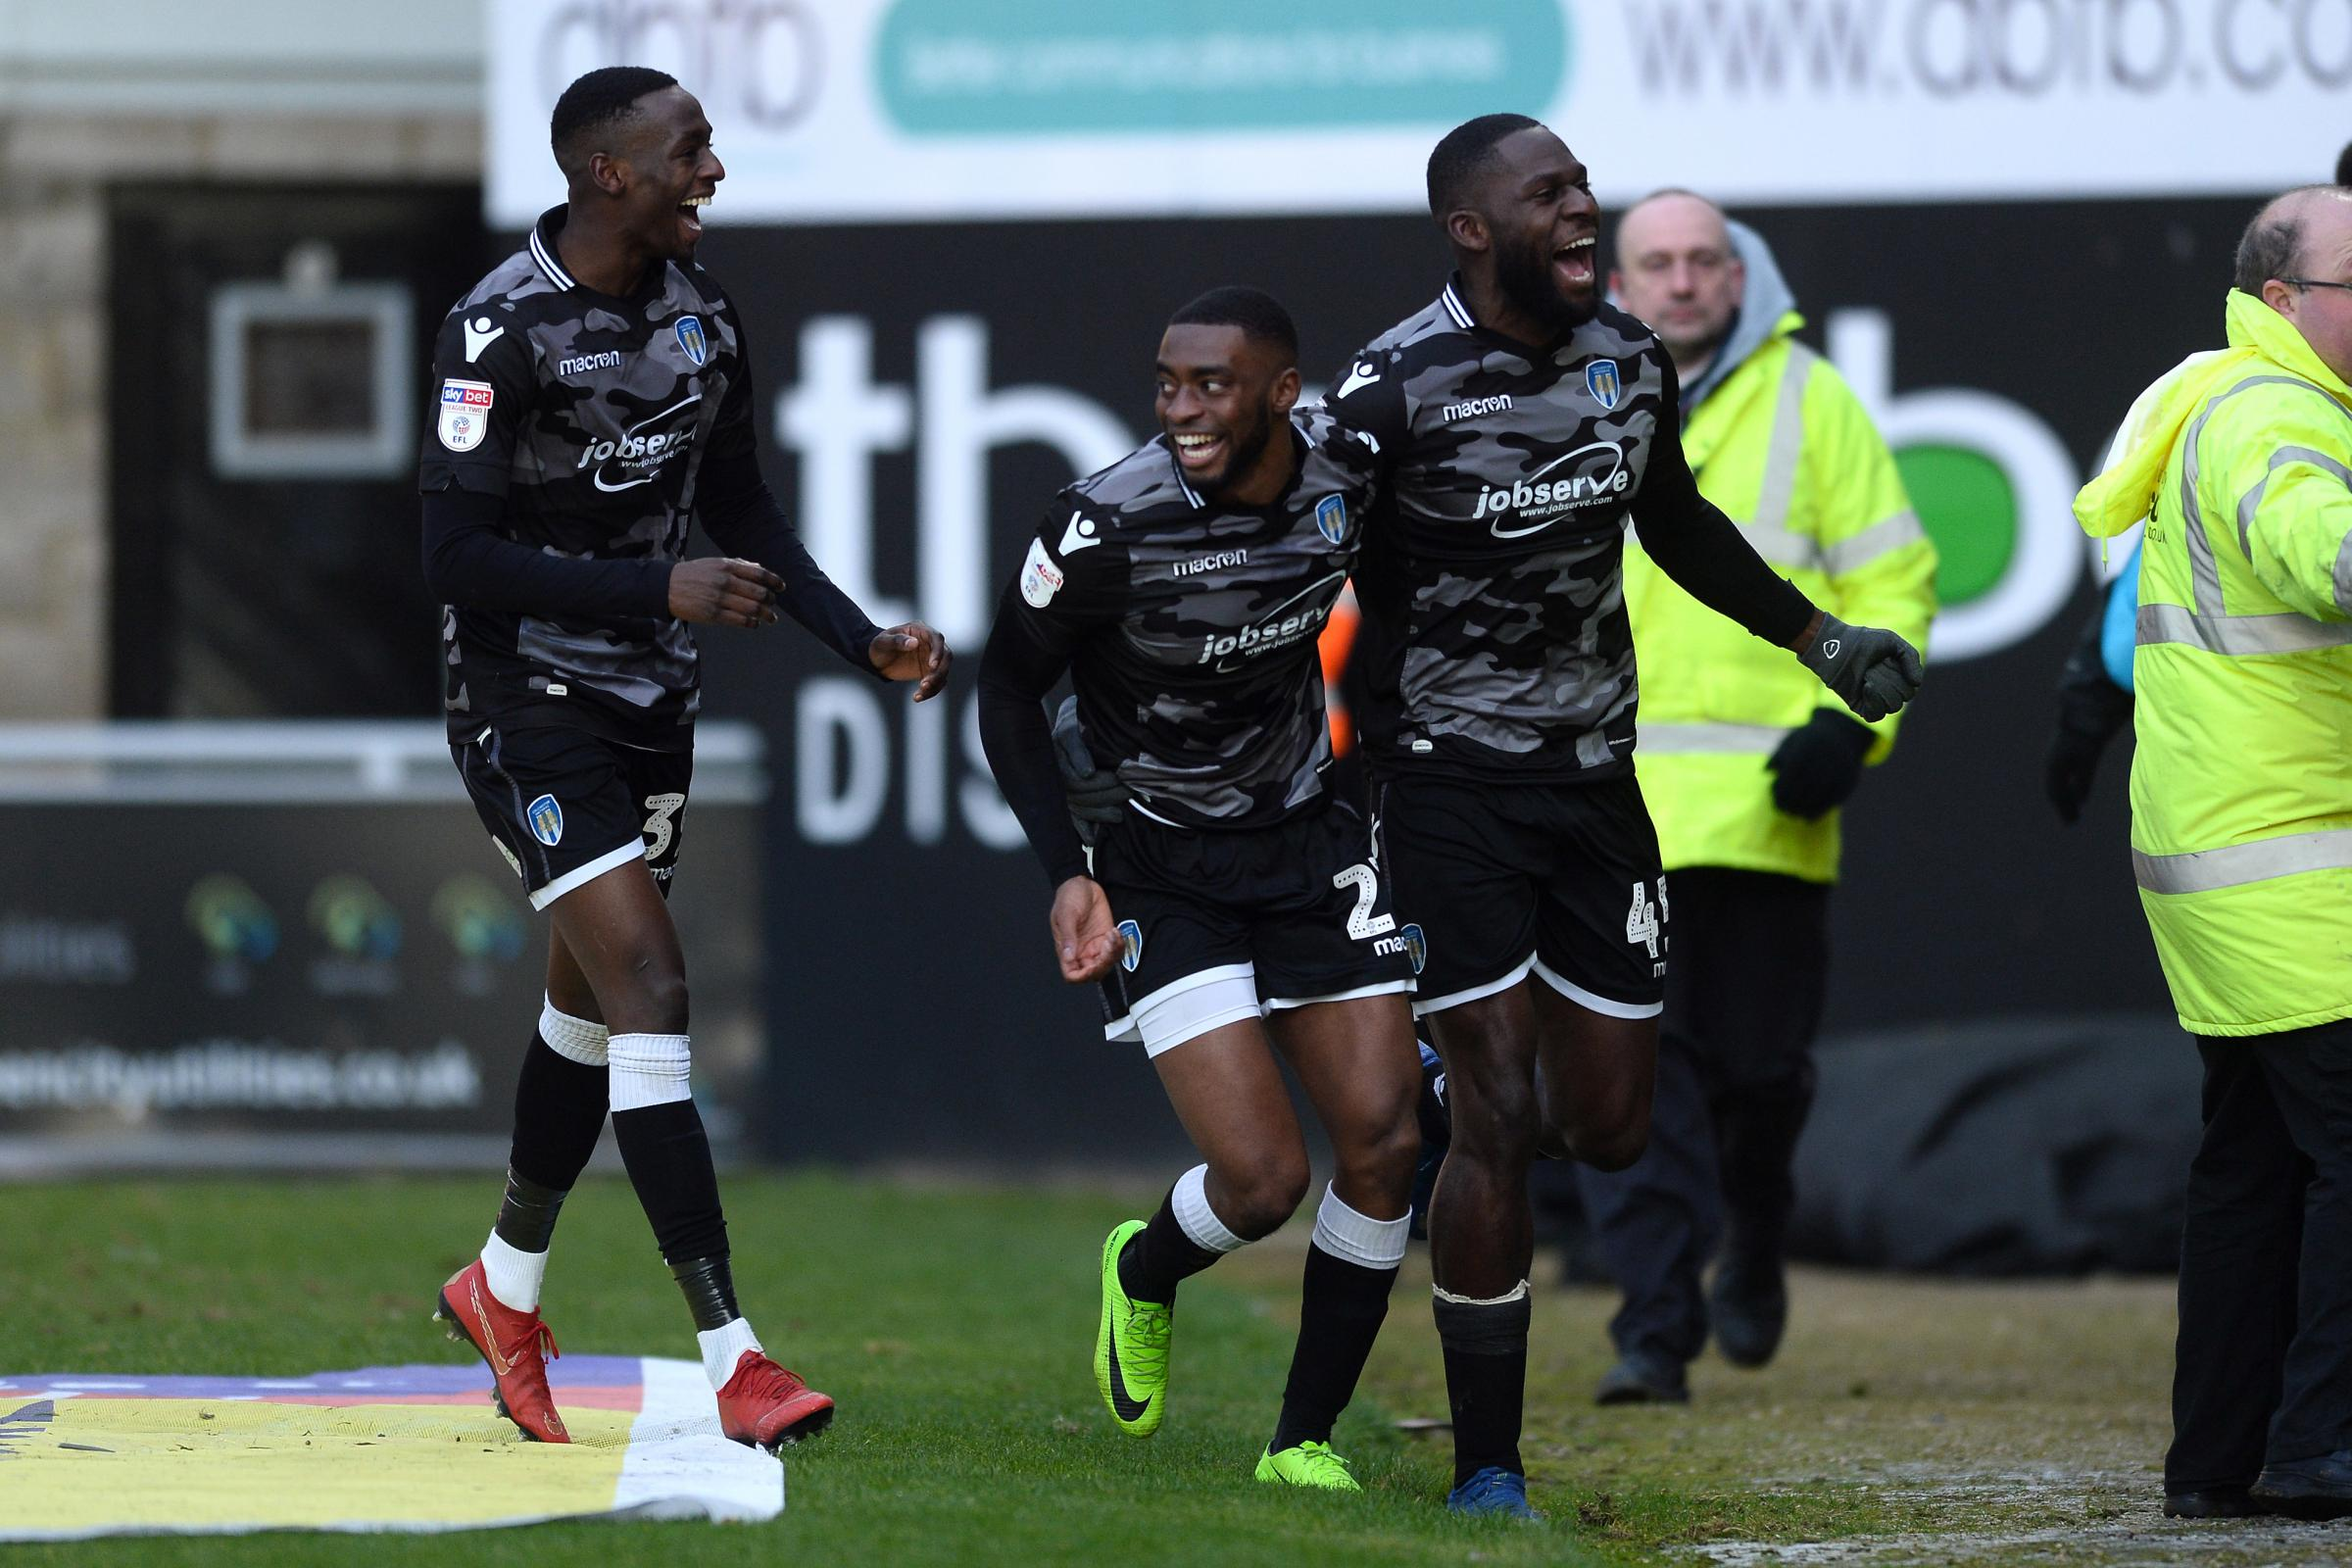 Away day - Kane Vincent-Young celebrates scoring at Northampton Town with team-mates Abo Eisa and Frank Nouble Picture: RICHARD BLAXALL